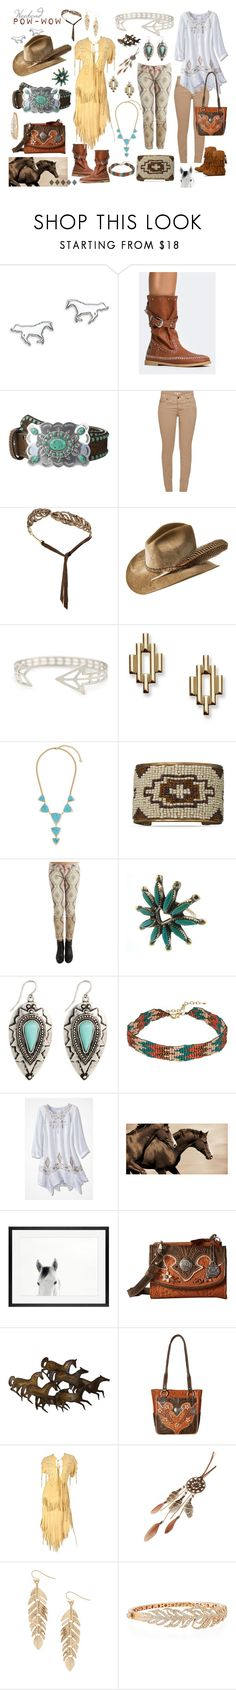 """""""Weekend POW-WOW"""" by dalasiodesigns ❤ liked on Polyvore featuring Thomas Sabo, M&F Western, Barbour, Madina Visconti di Modrone, Bailey Western, FOSSIL, Vera Bradley, BillyTheTree, Leftbank Art and Pottery Barn"""